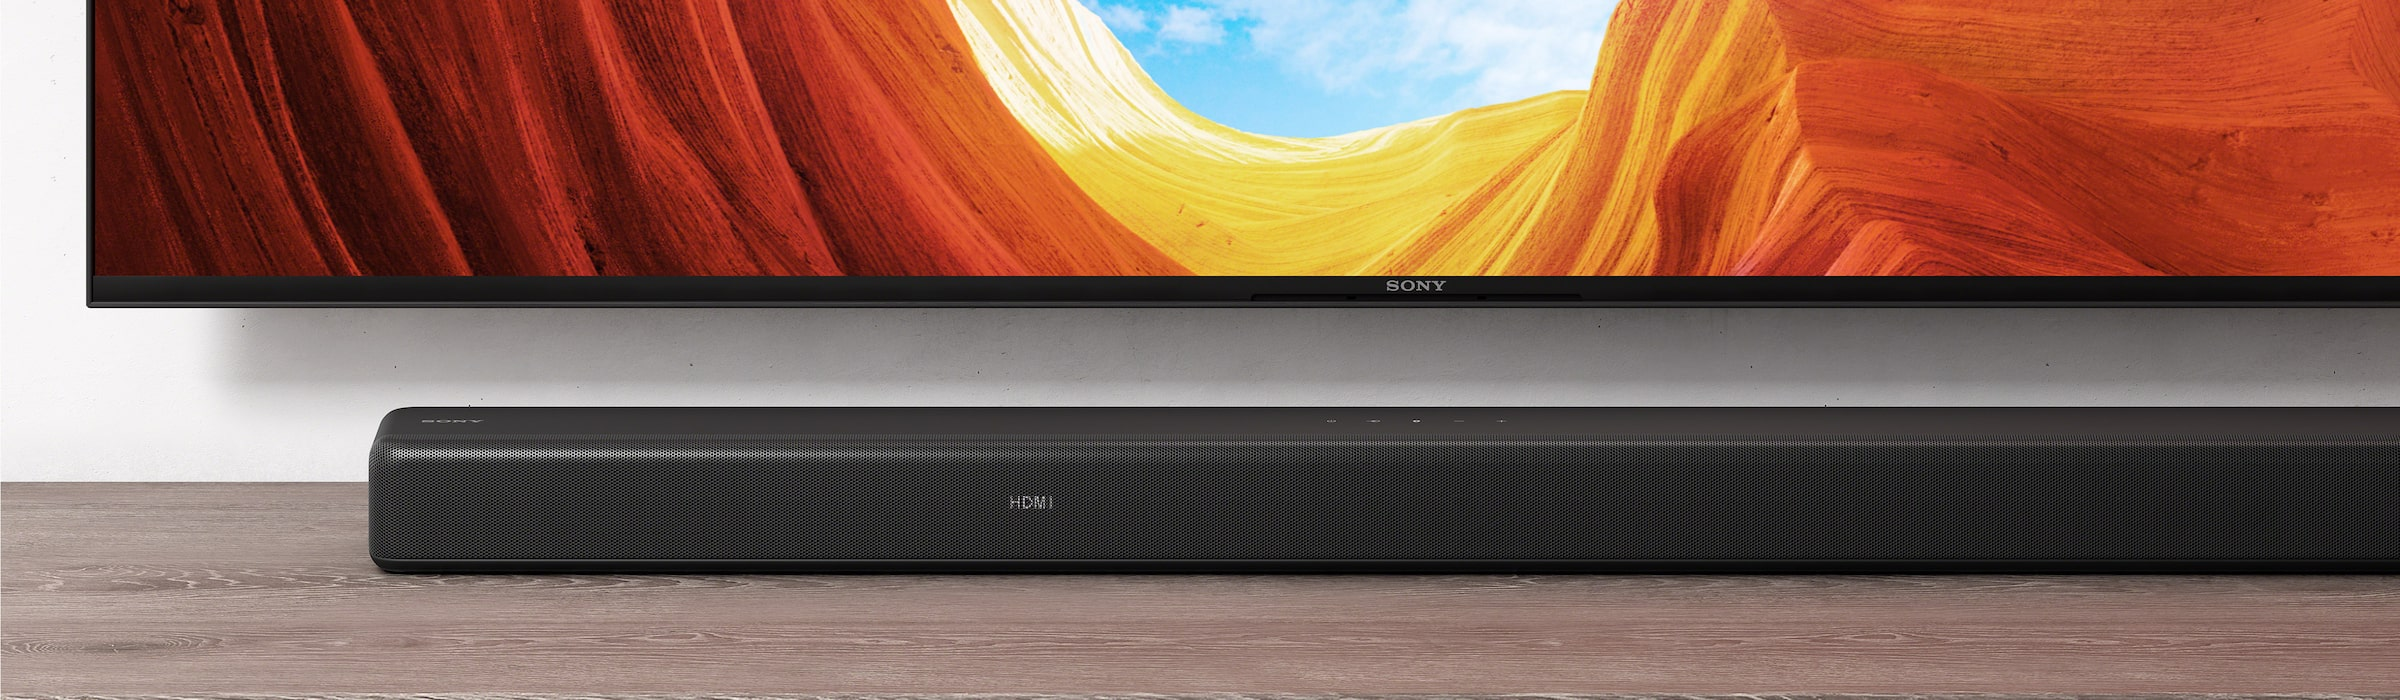 HT-G700 sound bar with Sony Bravia TV